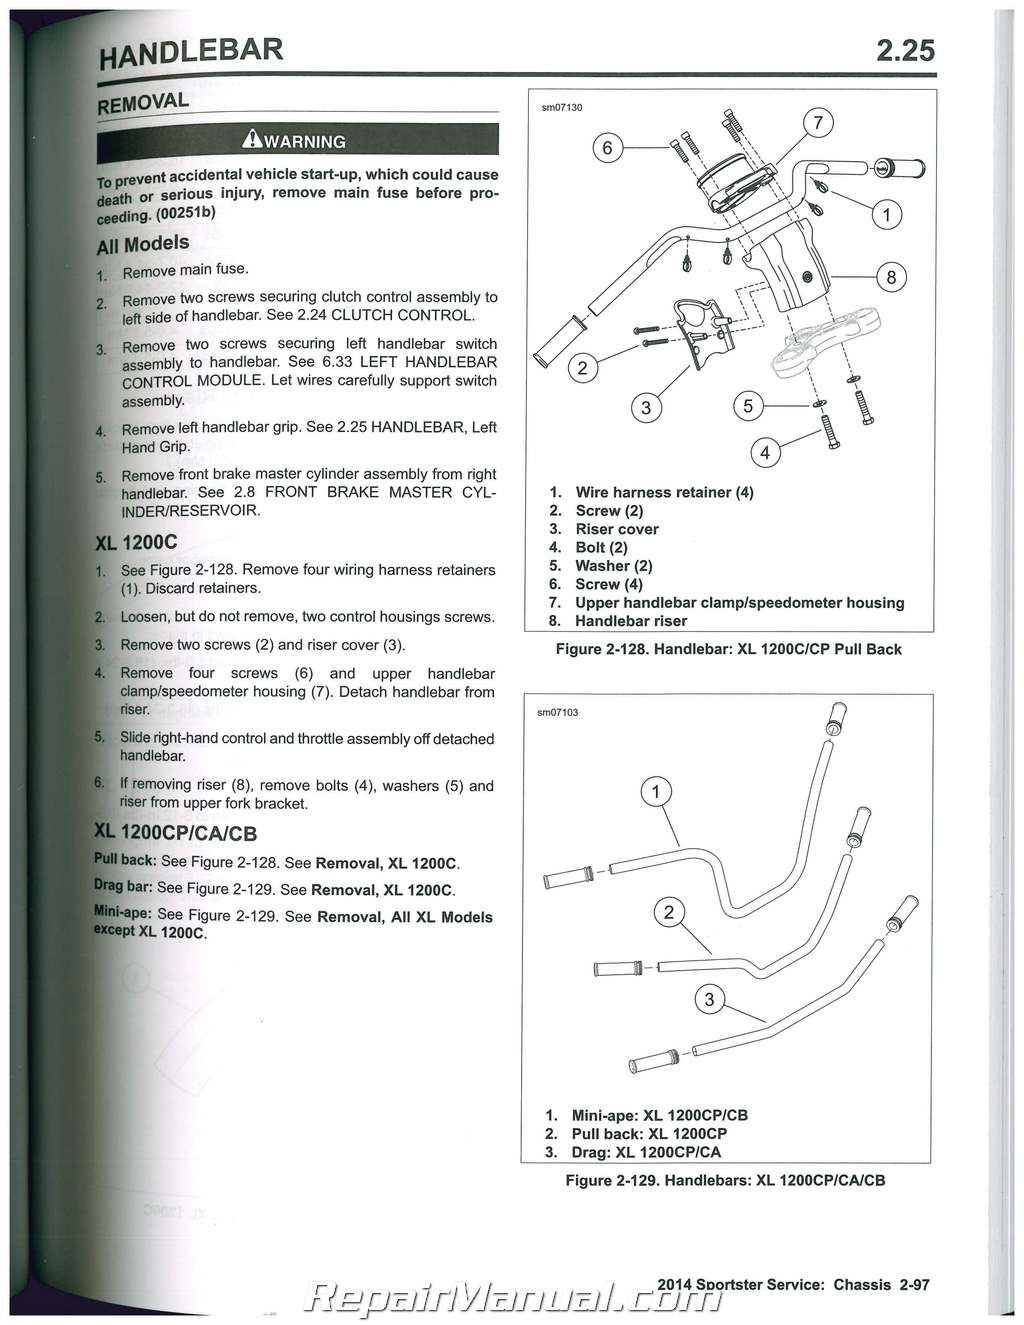 2014 Harley Davidson Sportster Motorcycle Service Manual Switch Back Wiring Diagram